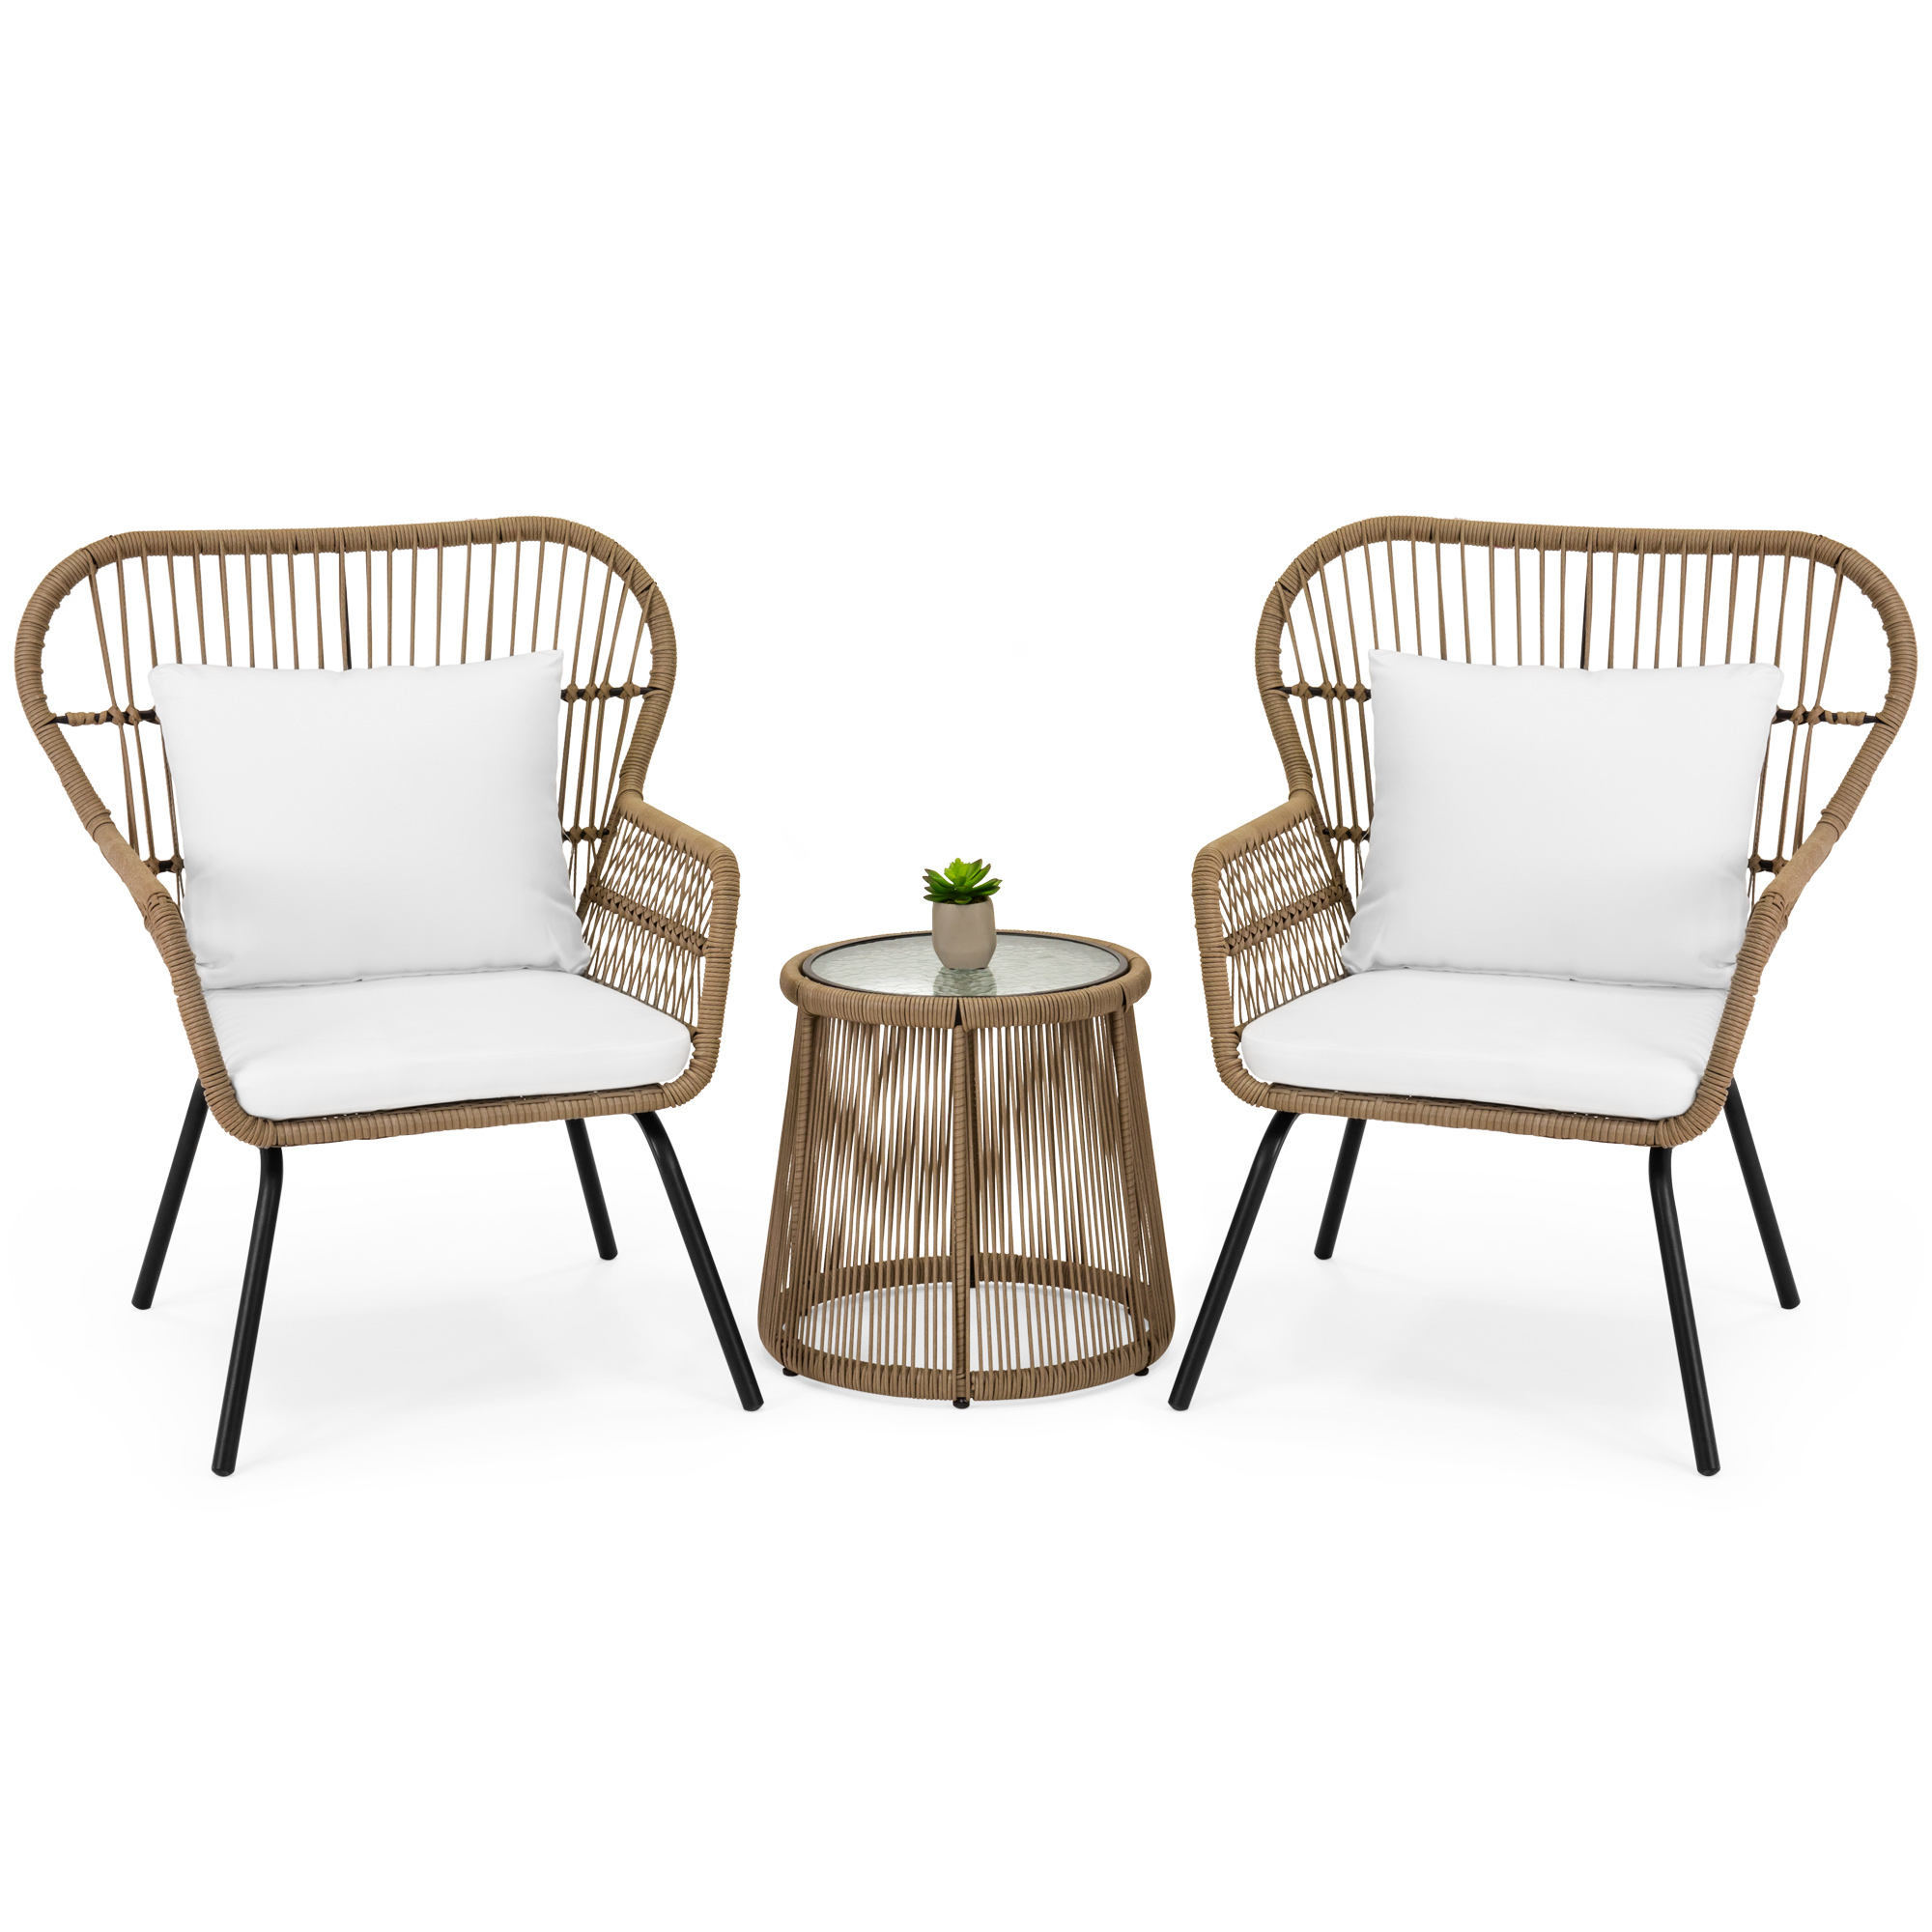 3 Piece Patio Lounger Sets Within Well Known Best Choice Products 3 Piece Patio Wicker Conversation Bistro Set W/ 2 Chairs, Glass Top Side Table, Cushions – Tan (View 19 of 25)